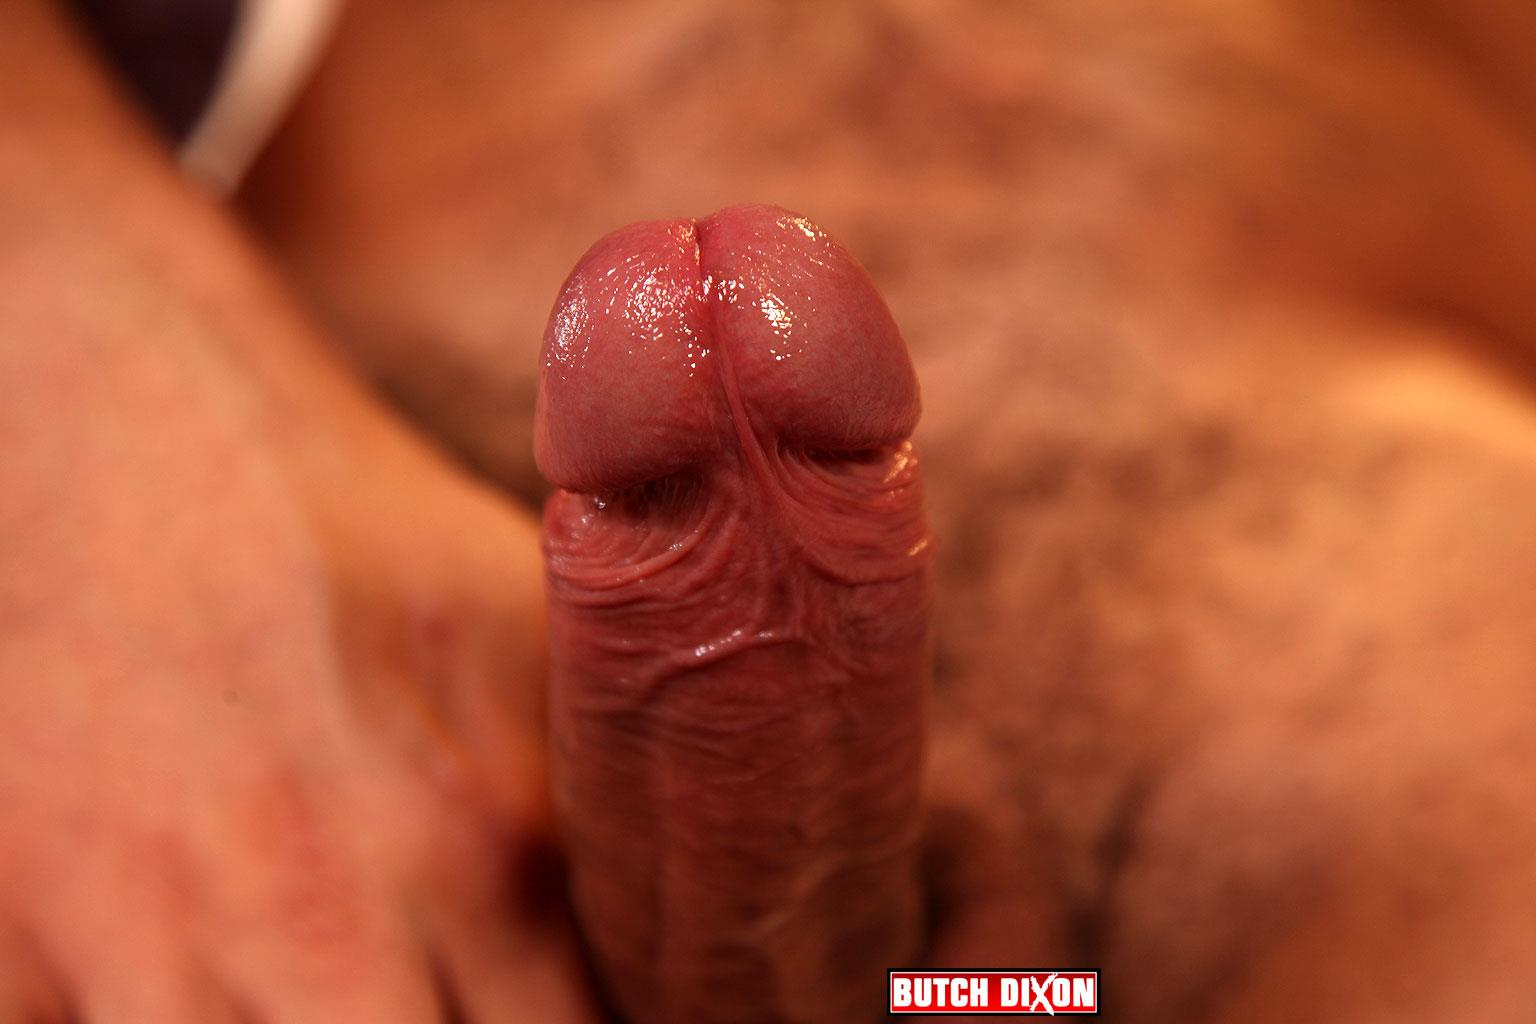 Butch-Dixon-Delta-Kobra-Muscle-Hunk-With-A-Big-Uncut-Cock-Jerking-Off-Amateur-Gay-Porn-17 Amateur Muscle Hunk Delta Kobra Jerks His Big Thick Uncut Cock